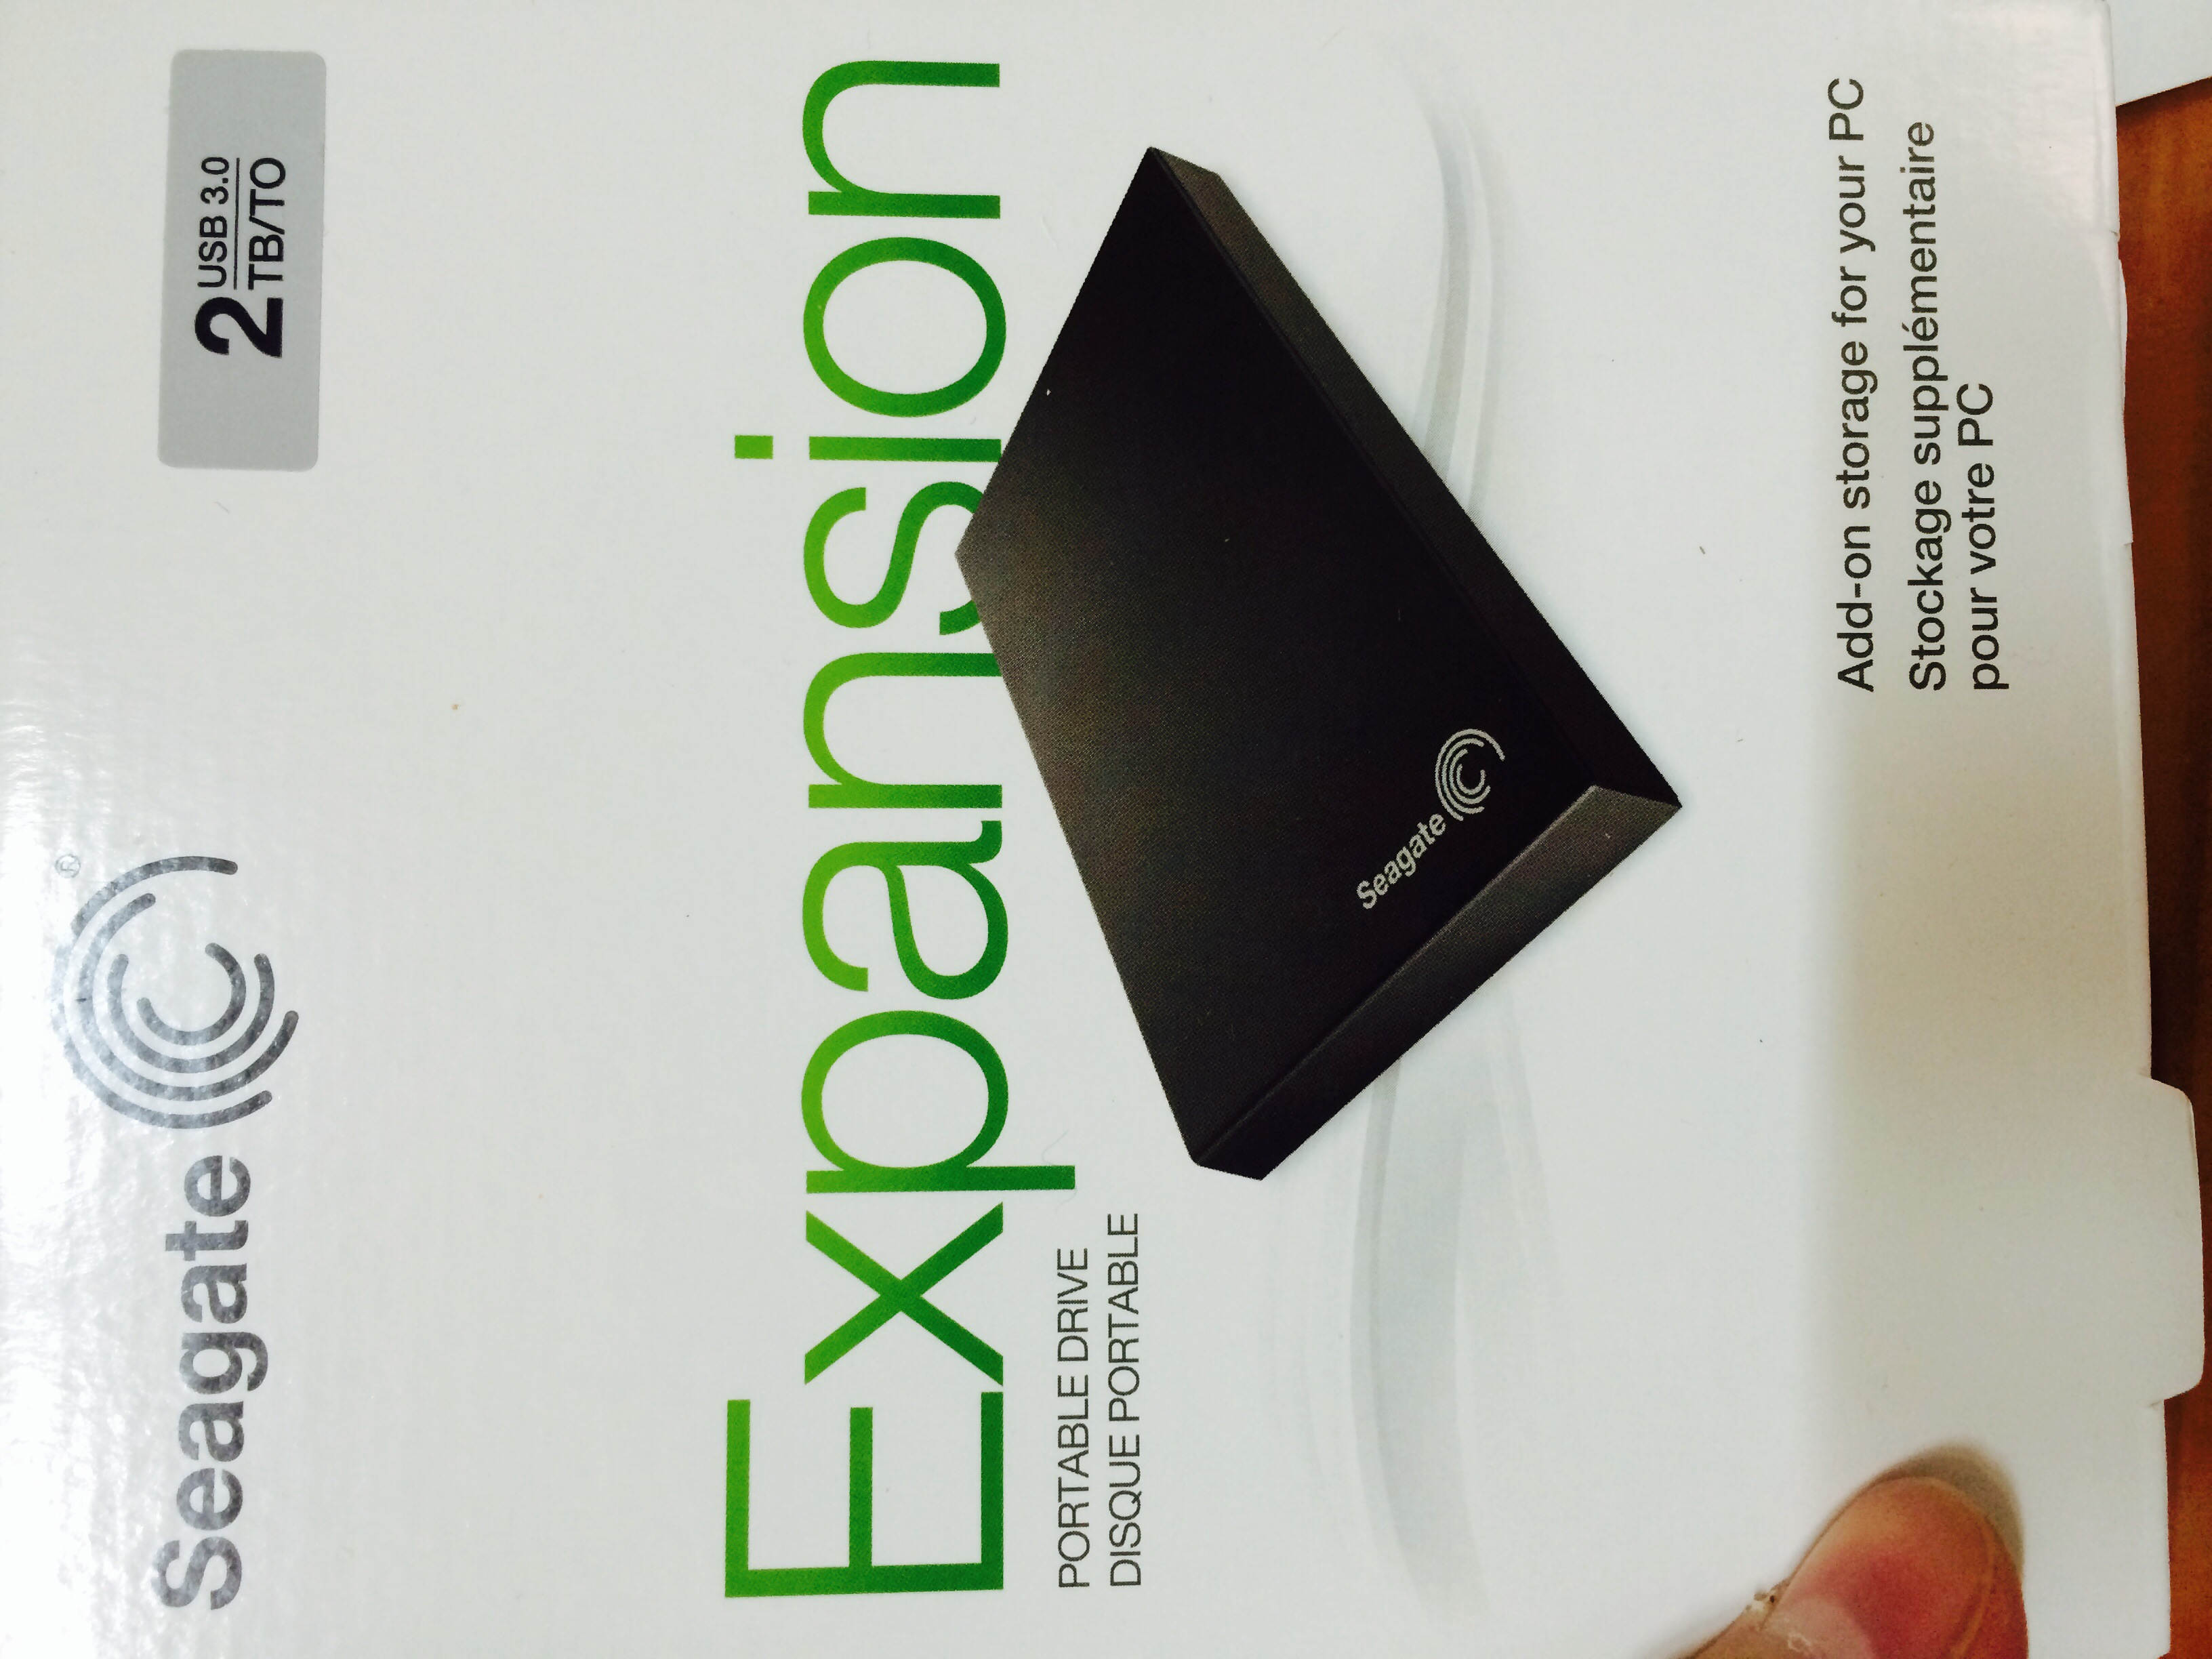 Seagate Expansion STBX2000401 2TB USB 3.0 Po..